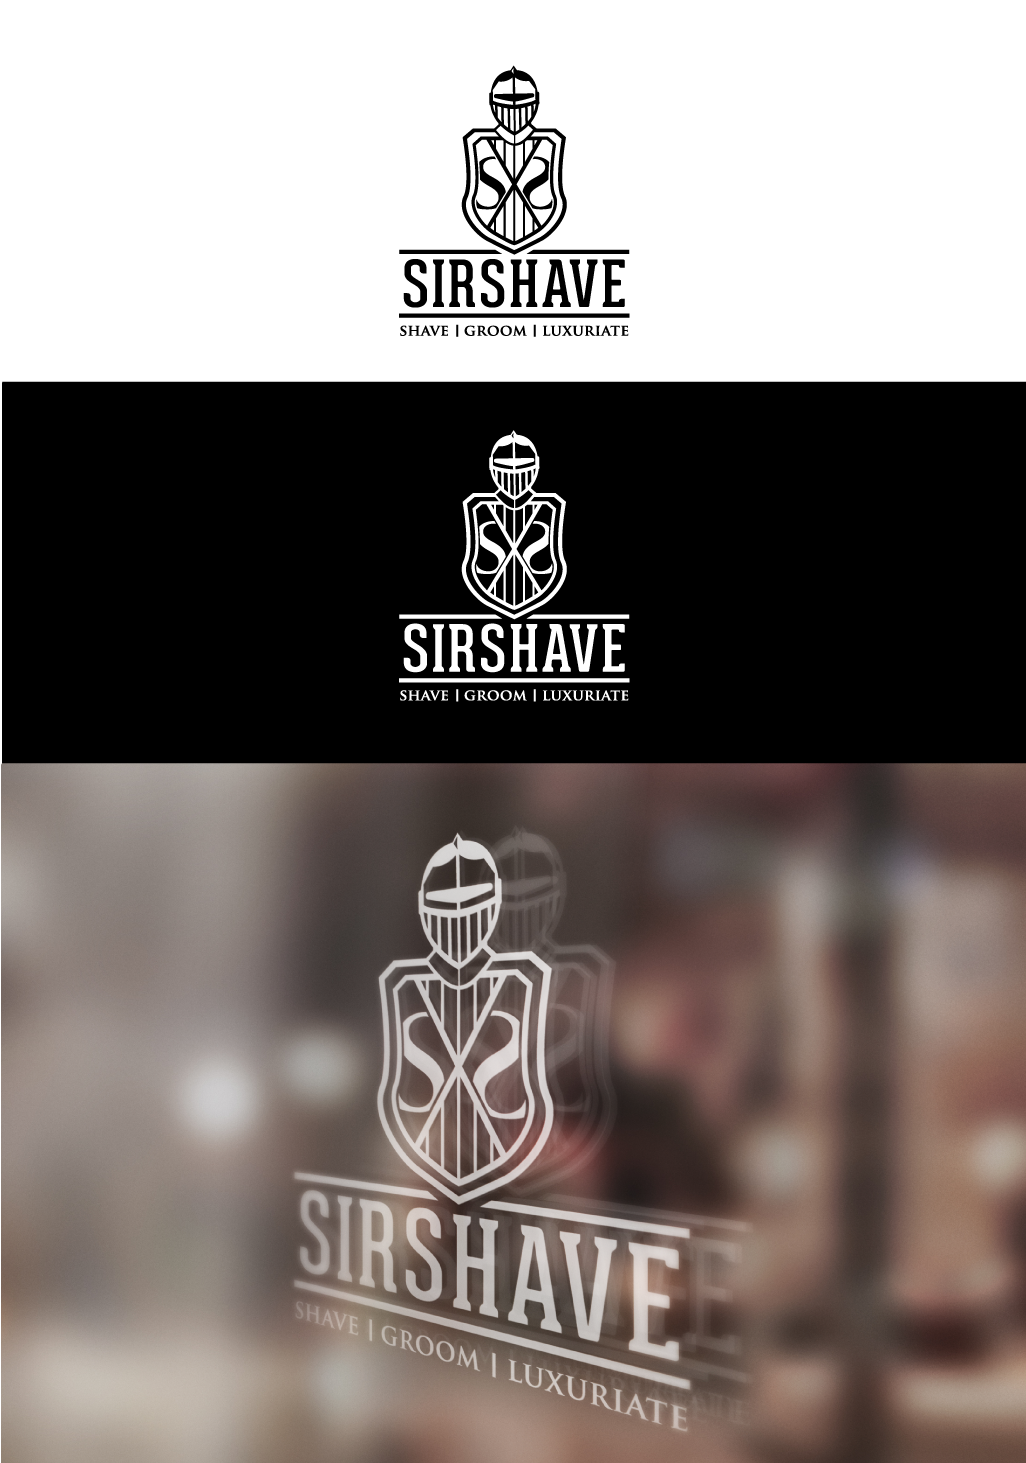 Help Sir Shave with a new logo